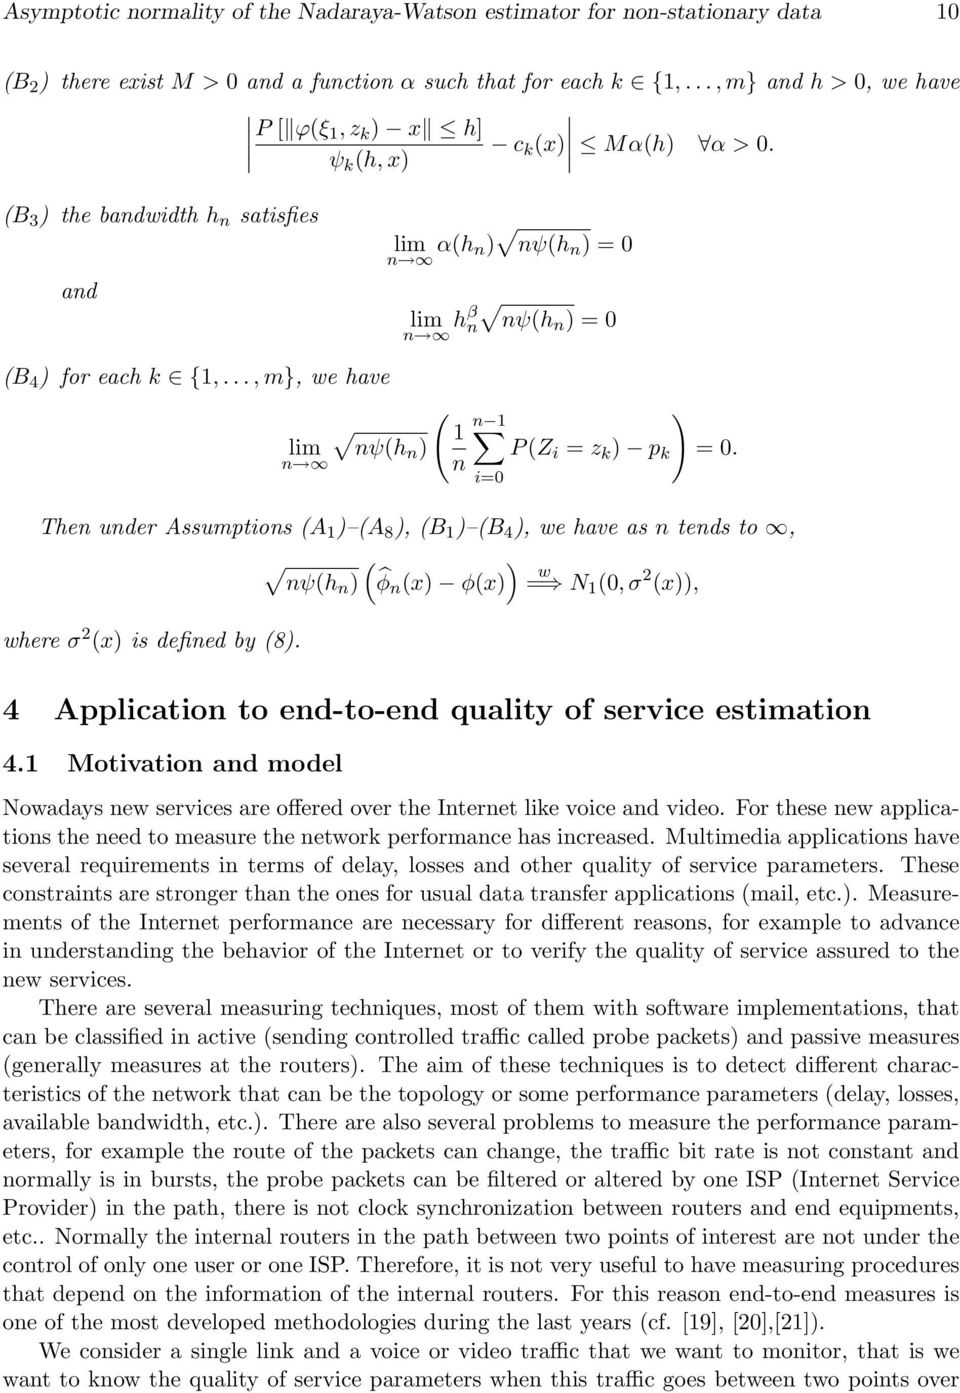 The uder Assumptios A A 8, B B 4, we have as teds to, where σ 2 x is defied by 8. ψh φ x φx w = N 0, σ 2 x, 4 Applicatio to ed-to-ed quality of service estimatio 4.